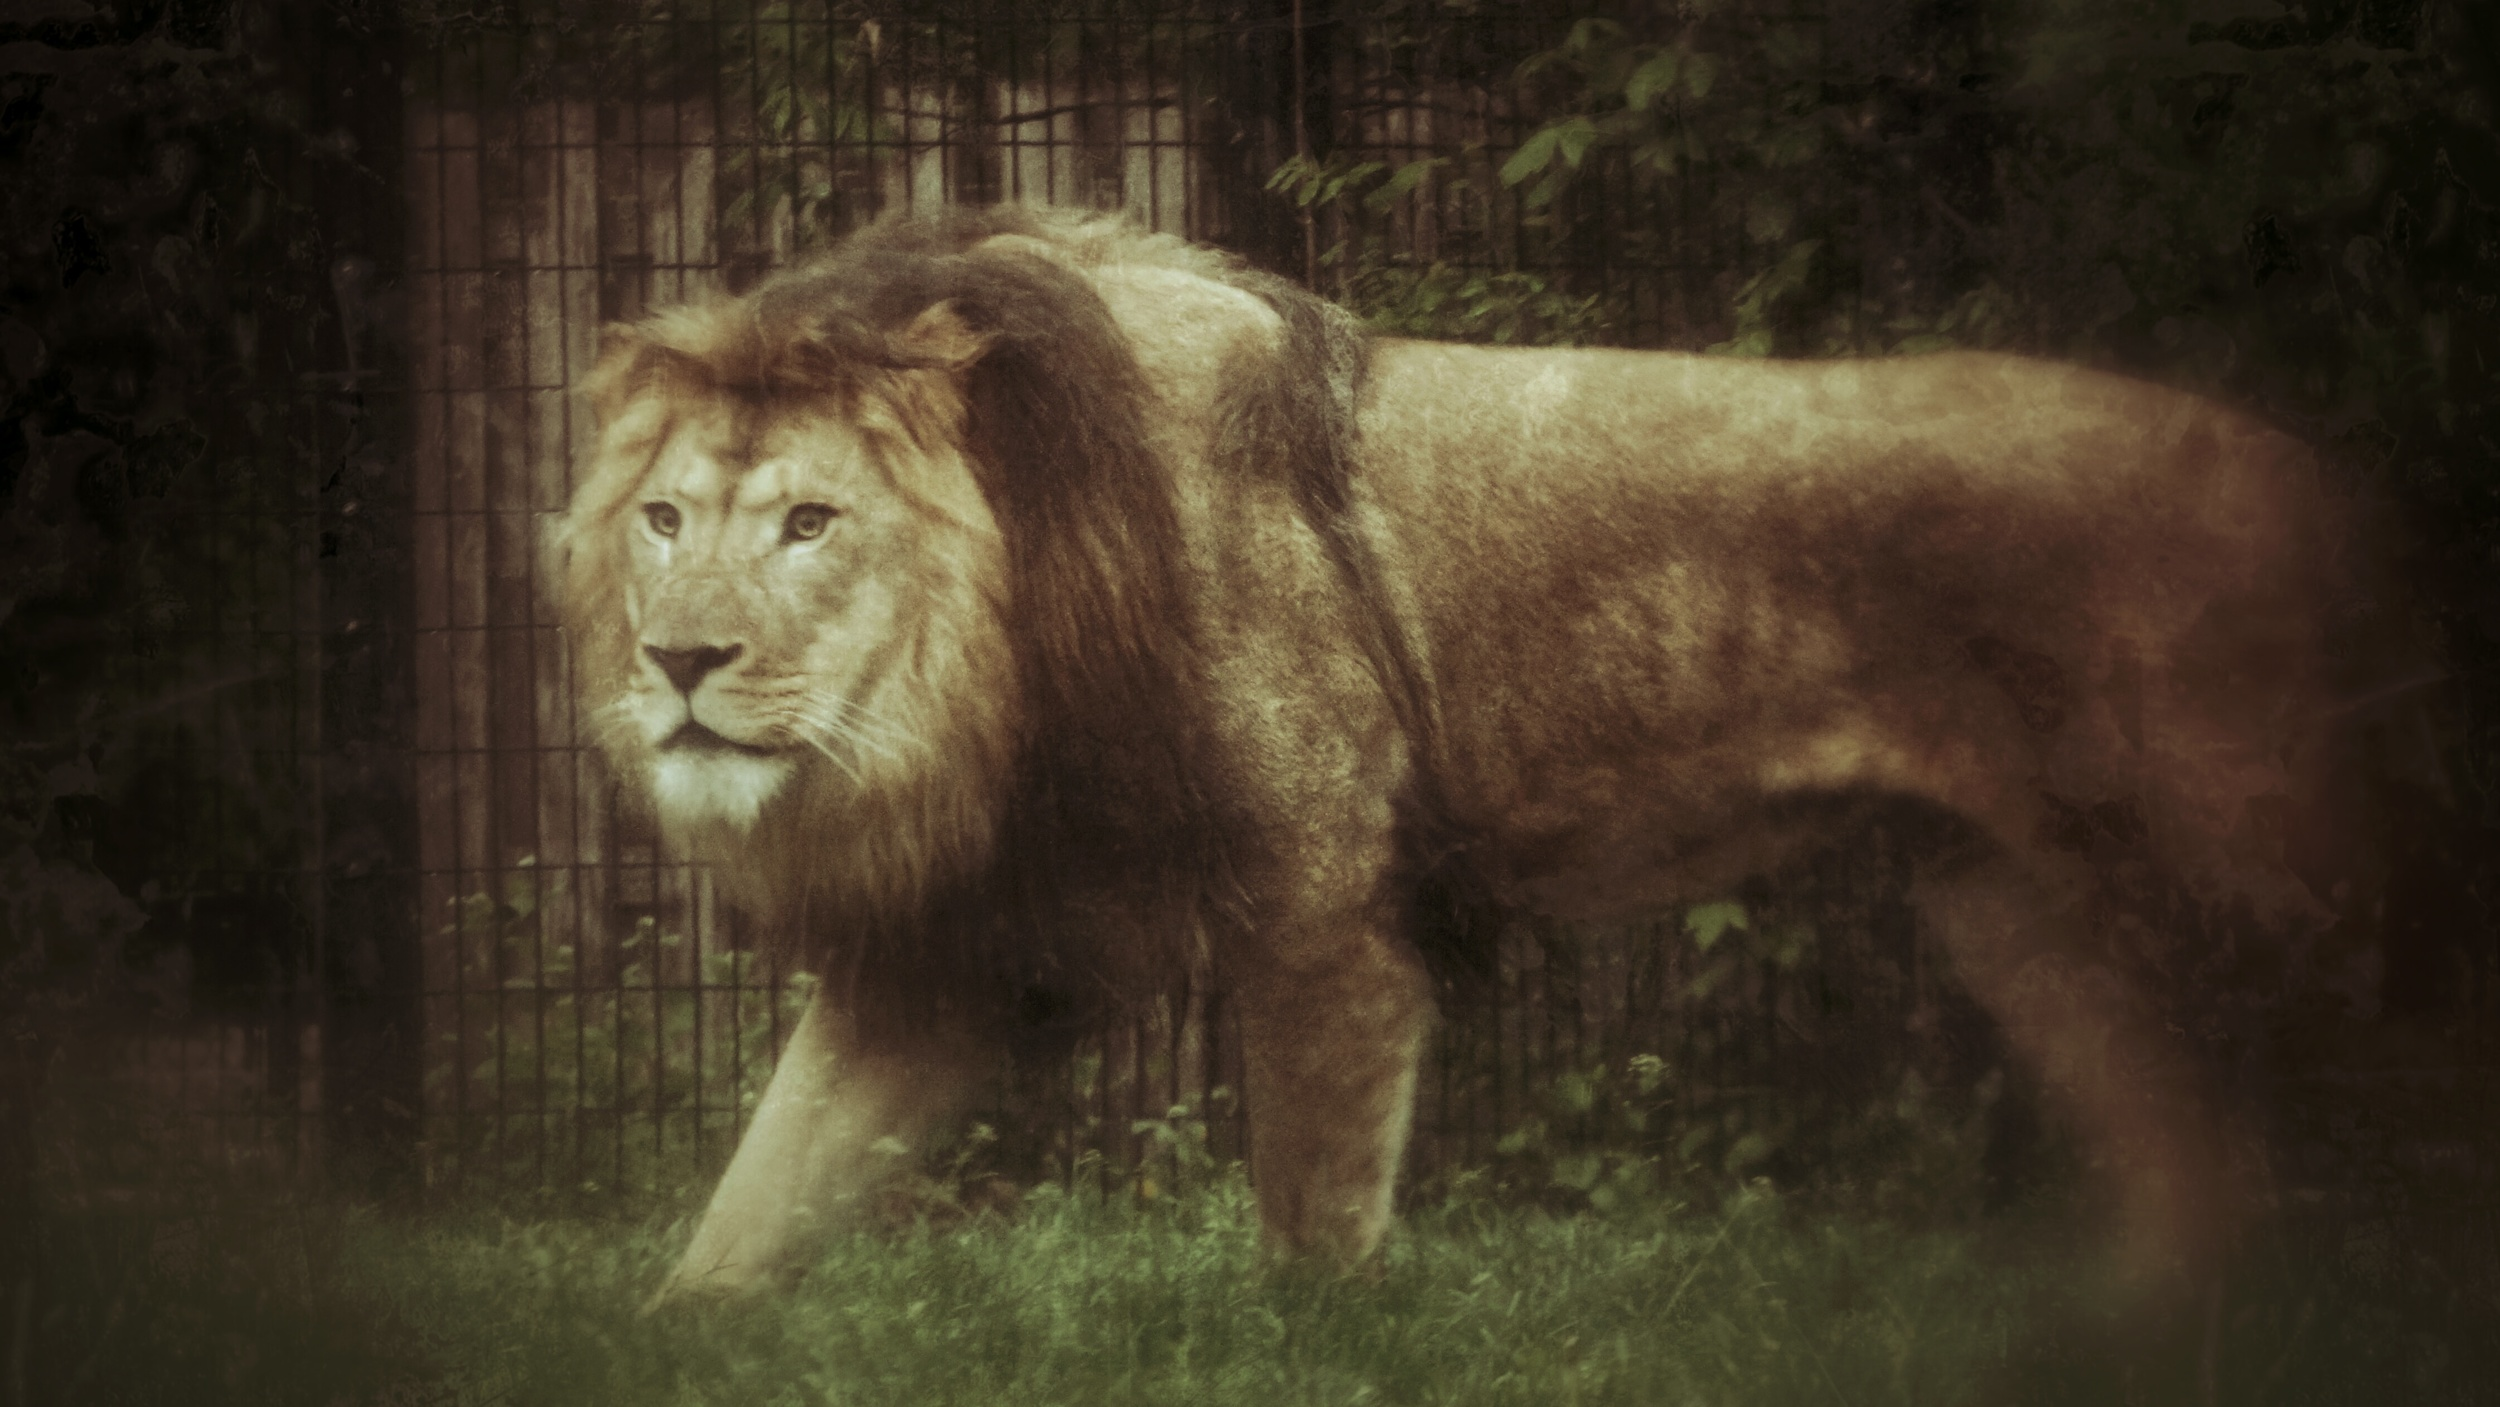 Lion at Blank Park Zoo in Des Moines, Iowa